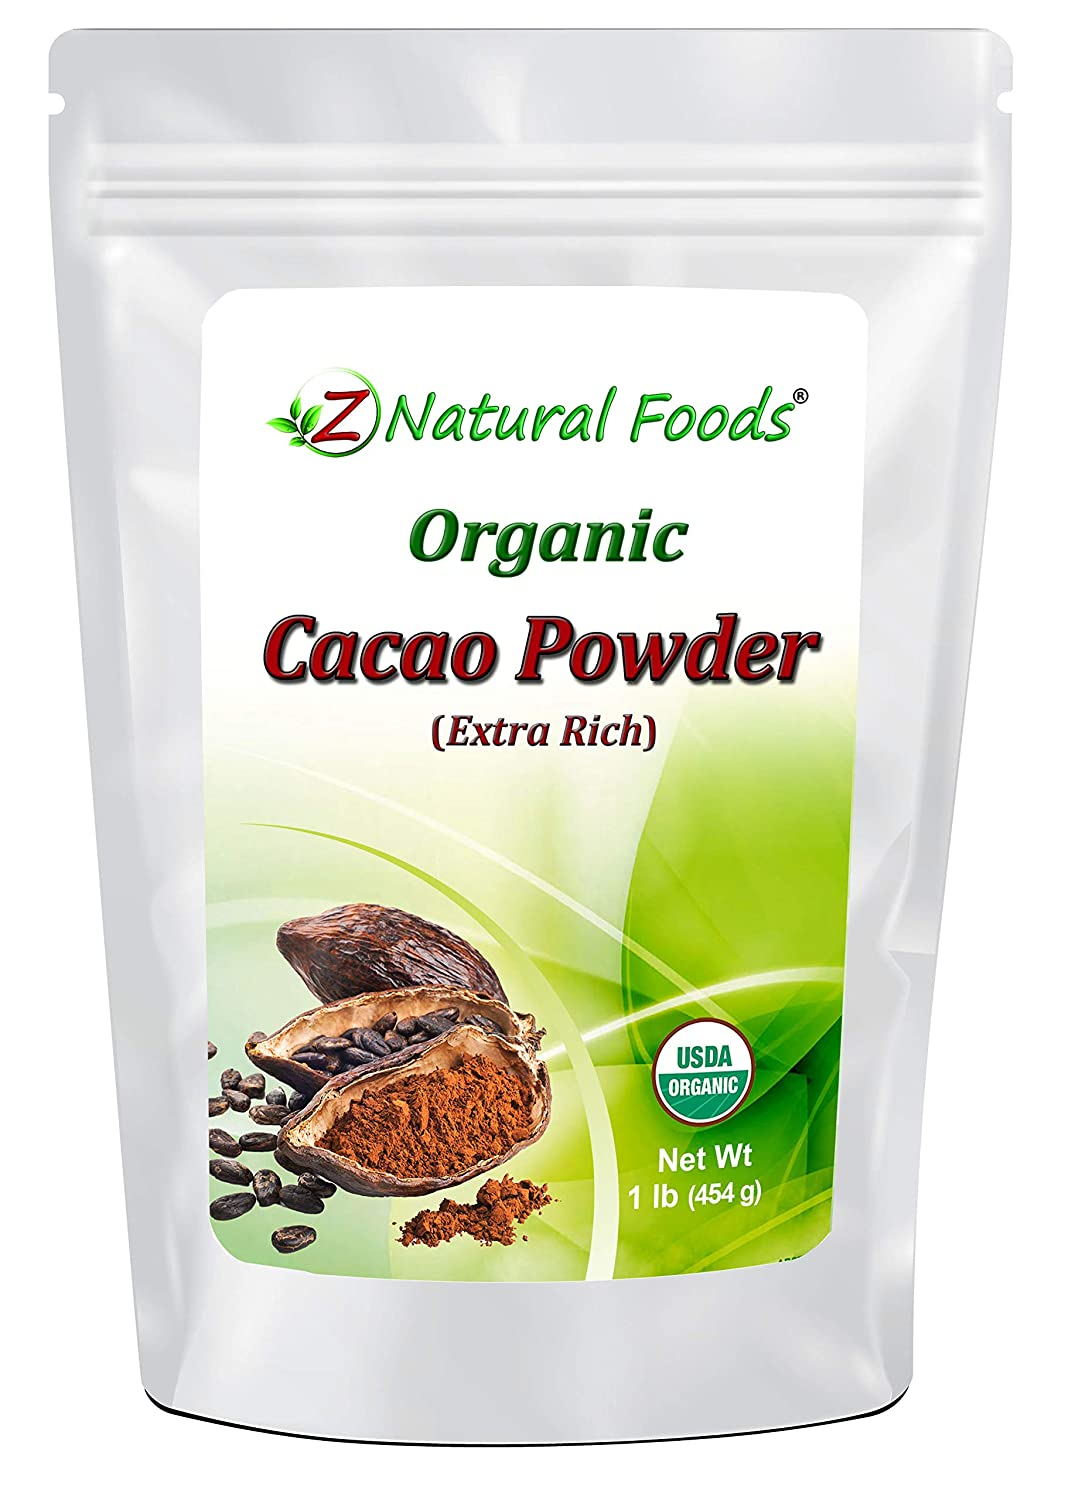 Premium Organic Cacao Powder Over item handling ☆ - Incredibly Flavorful Extra Quantity limited Rich